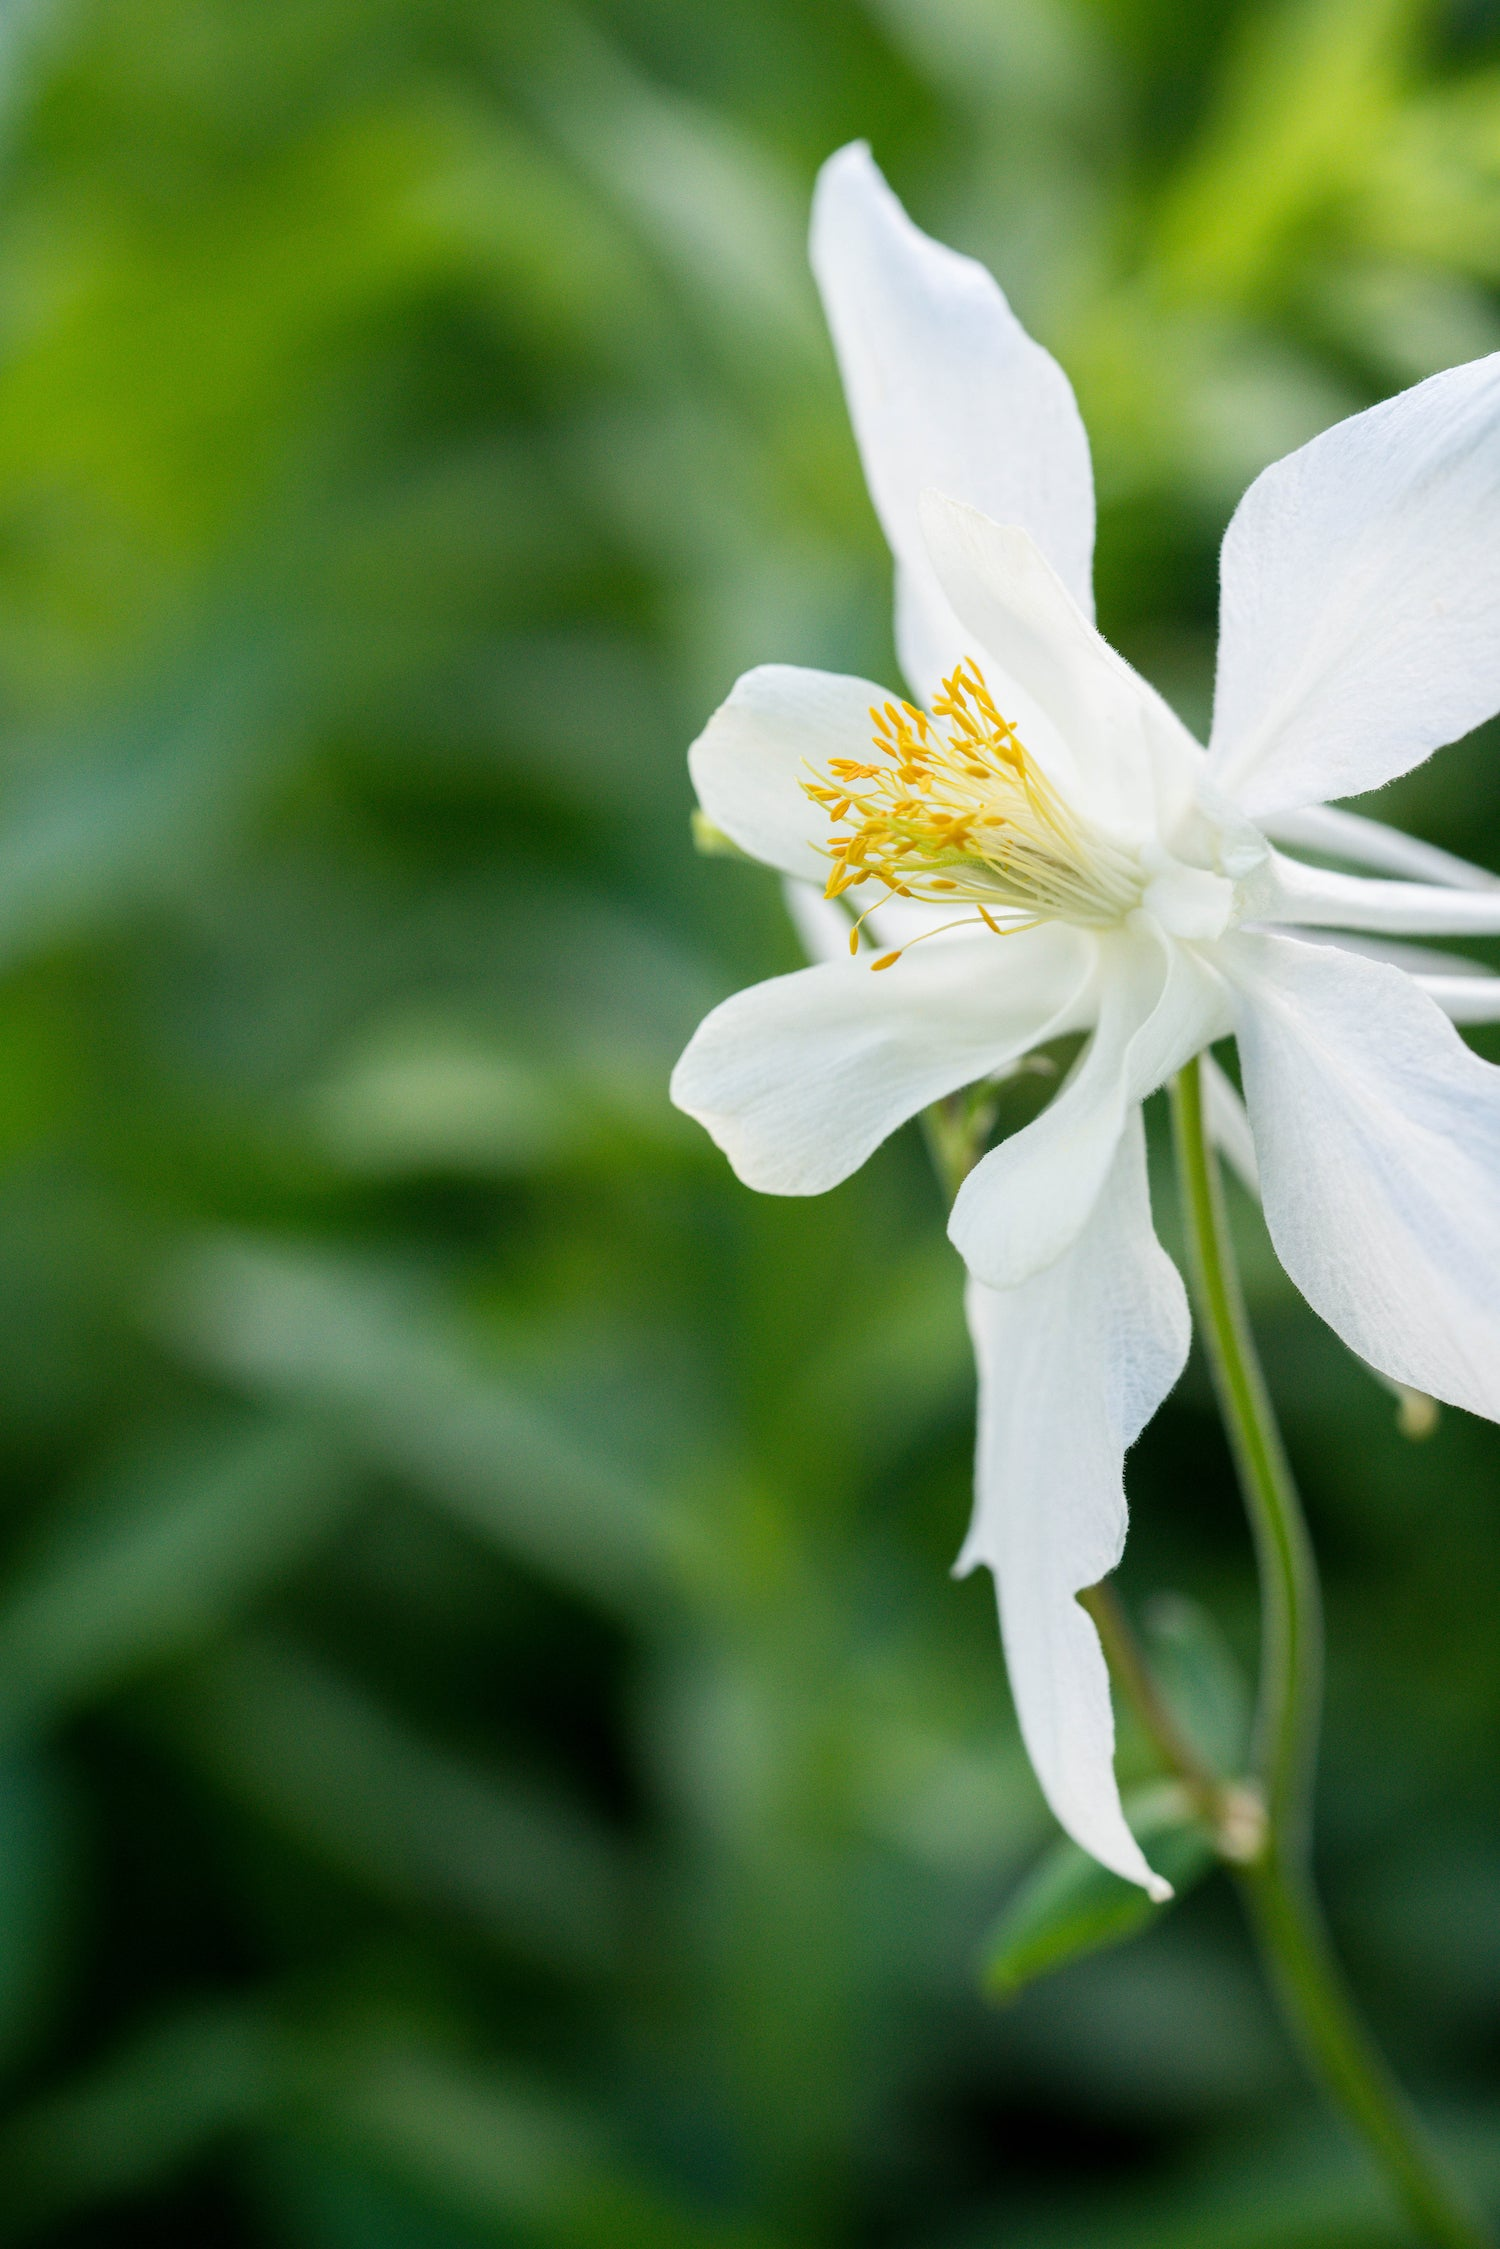 White columbine divine feminine elegance godmotherly love lotuswei white columbine flower essence lotuswei flower essences izmirmasajfo